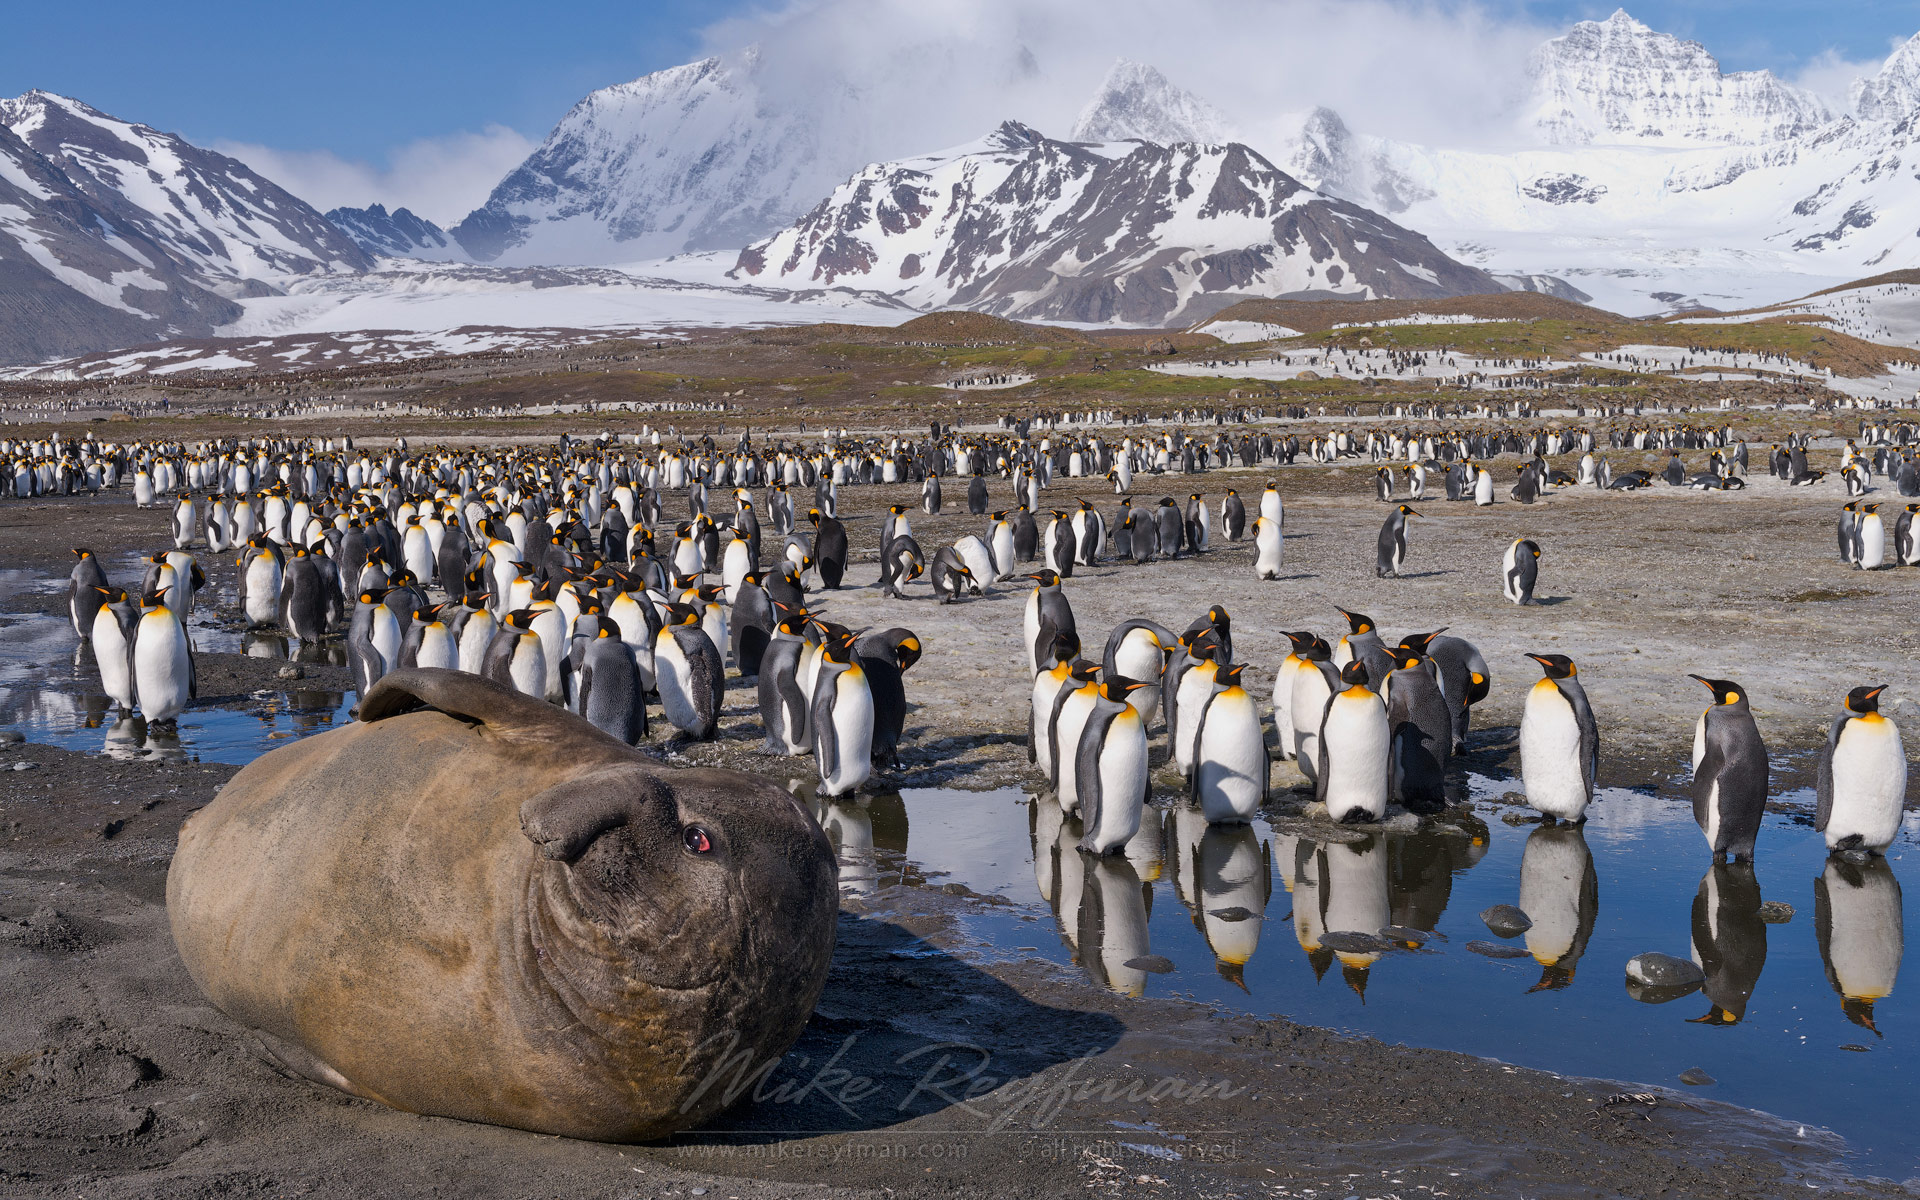 Southern Elephant Seal (Mirounga leonina) and King Penguins (Aptenodytes patagonicus). Saint Andrews Bay, South Georgia, Sub-Antarctic - Southern-Elephant-Seals-Fur-Seals-South-Georgia-Sub-Antarctic - Mike Reyfman Photography